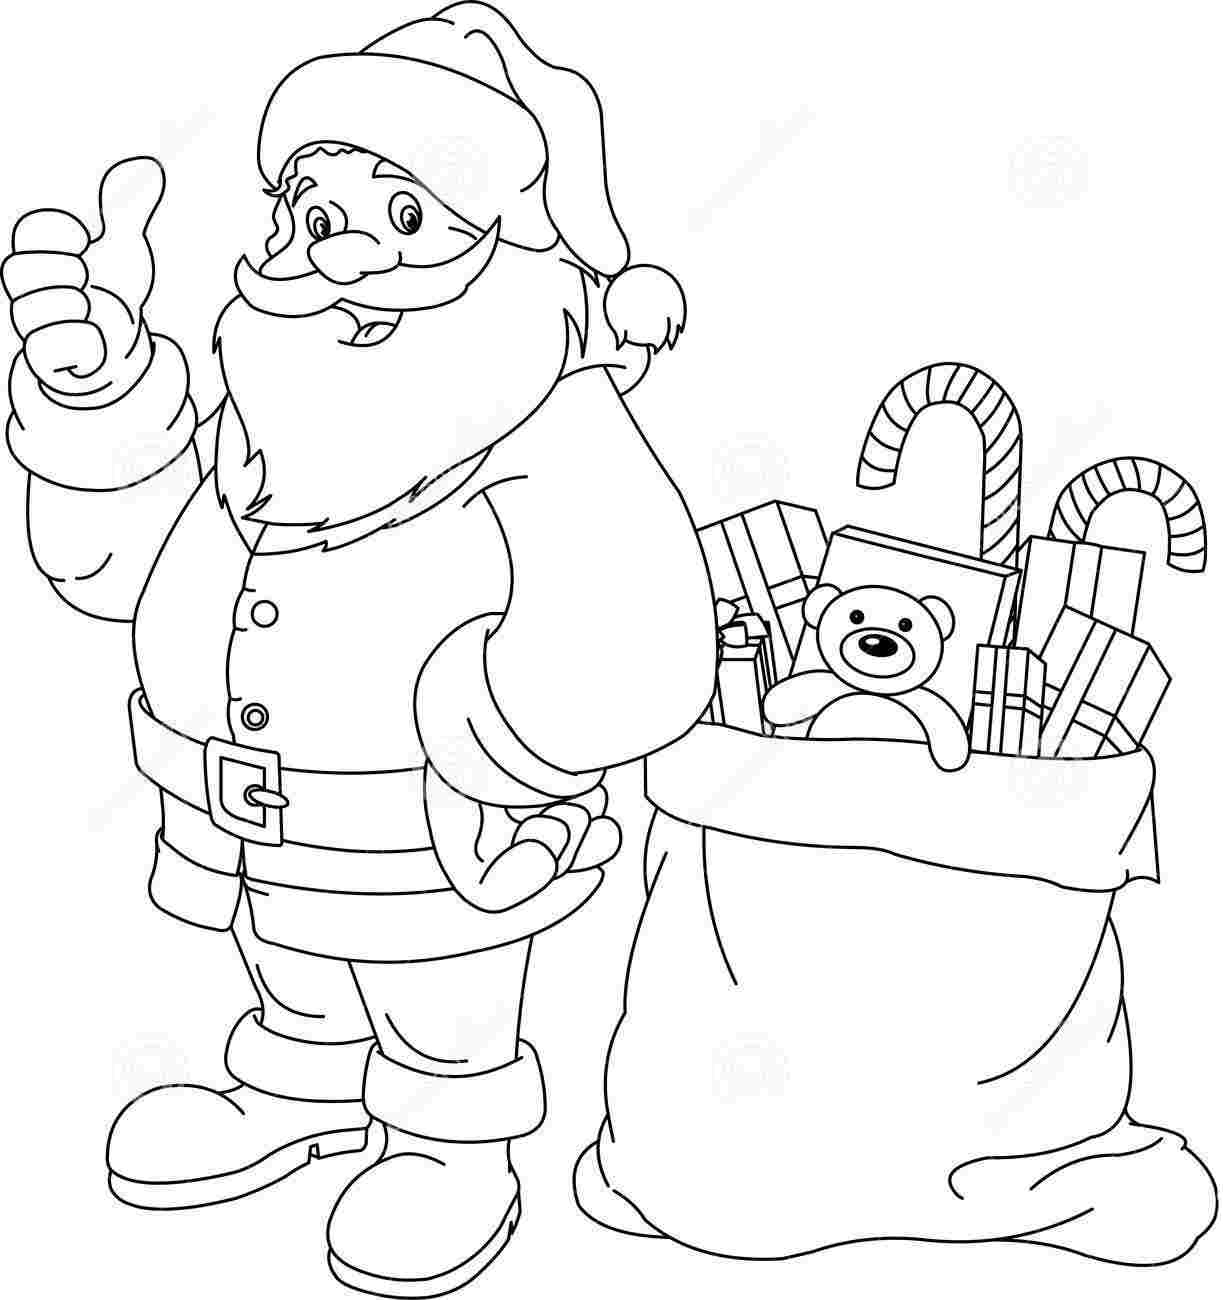 coloring pages with santa - photo#36